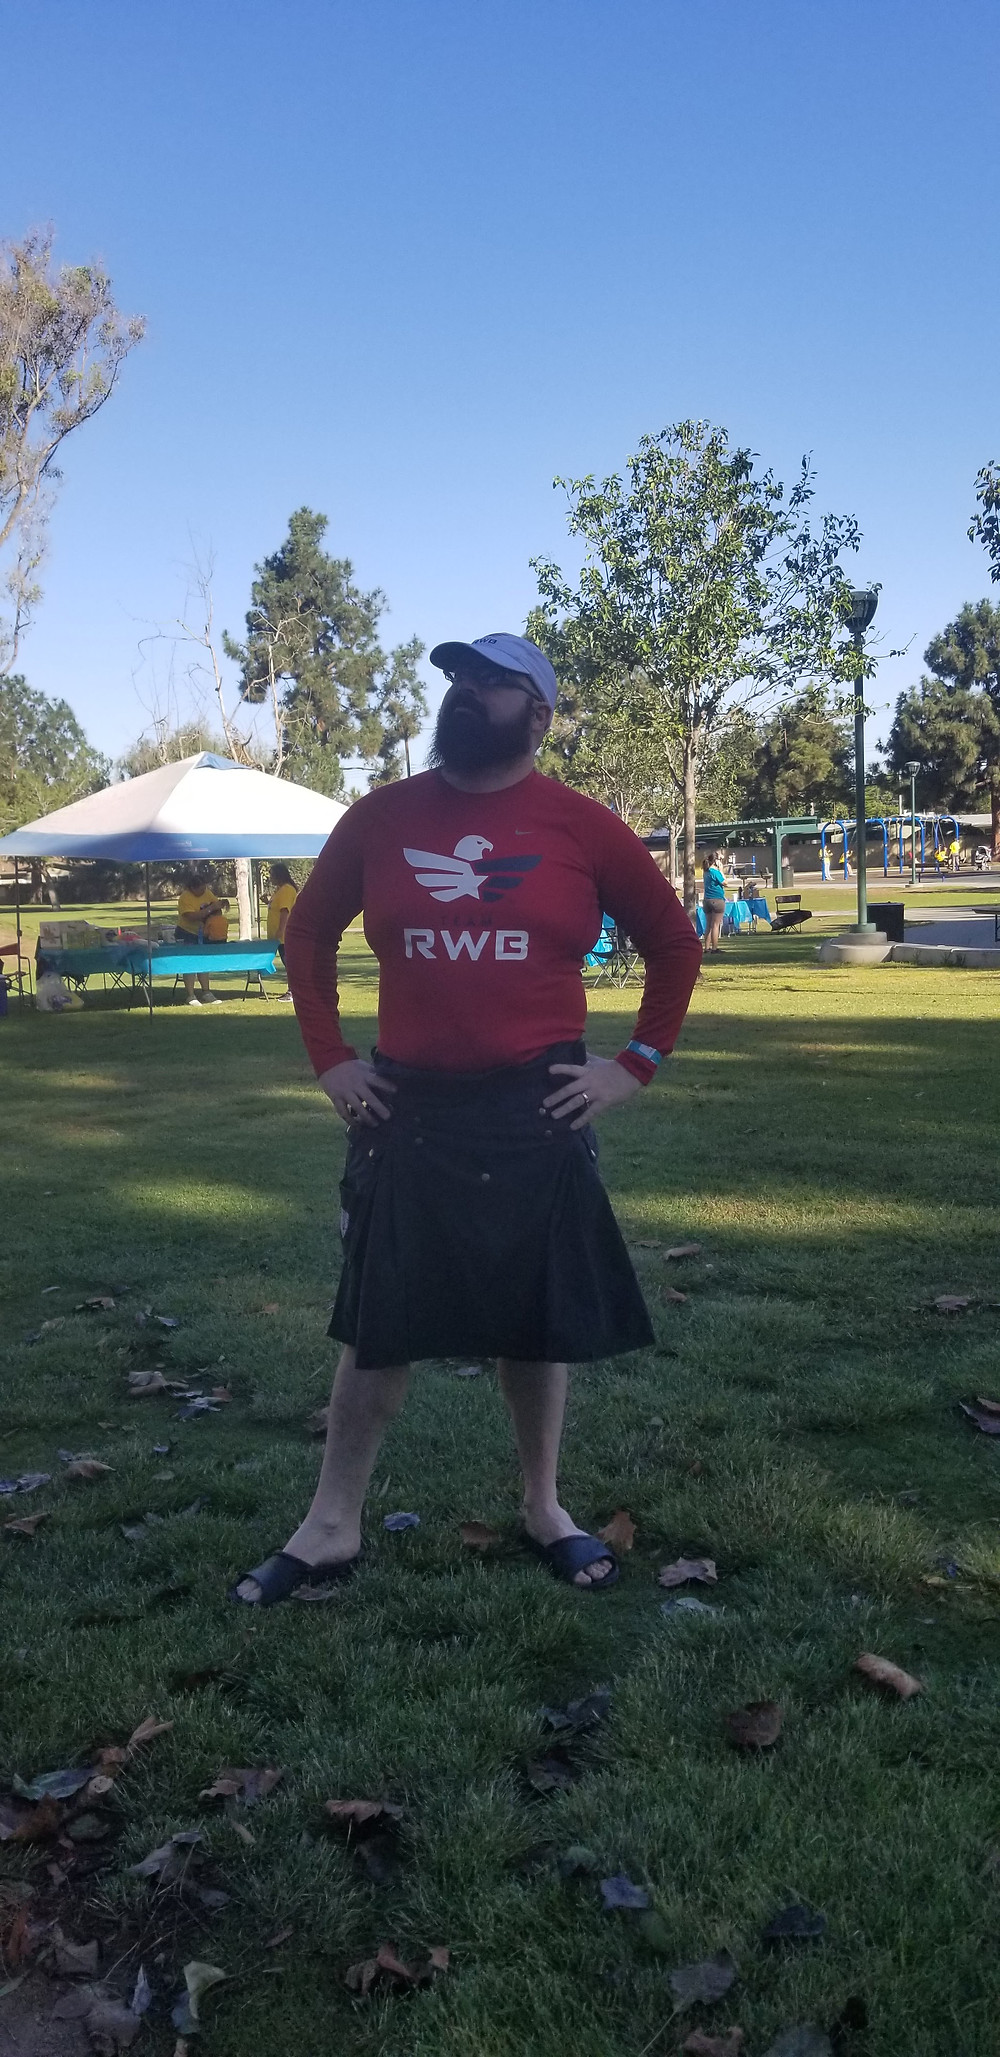 kilt, hiking, backpacking, kilts, team rwb, outdoors